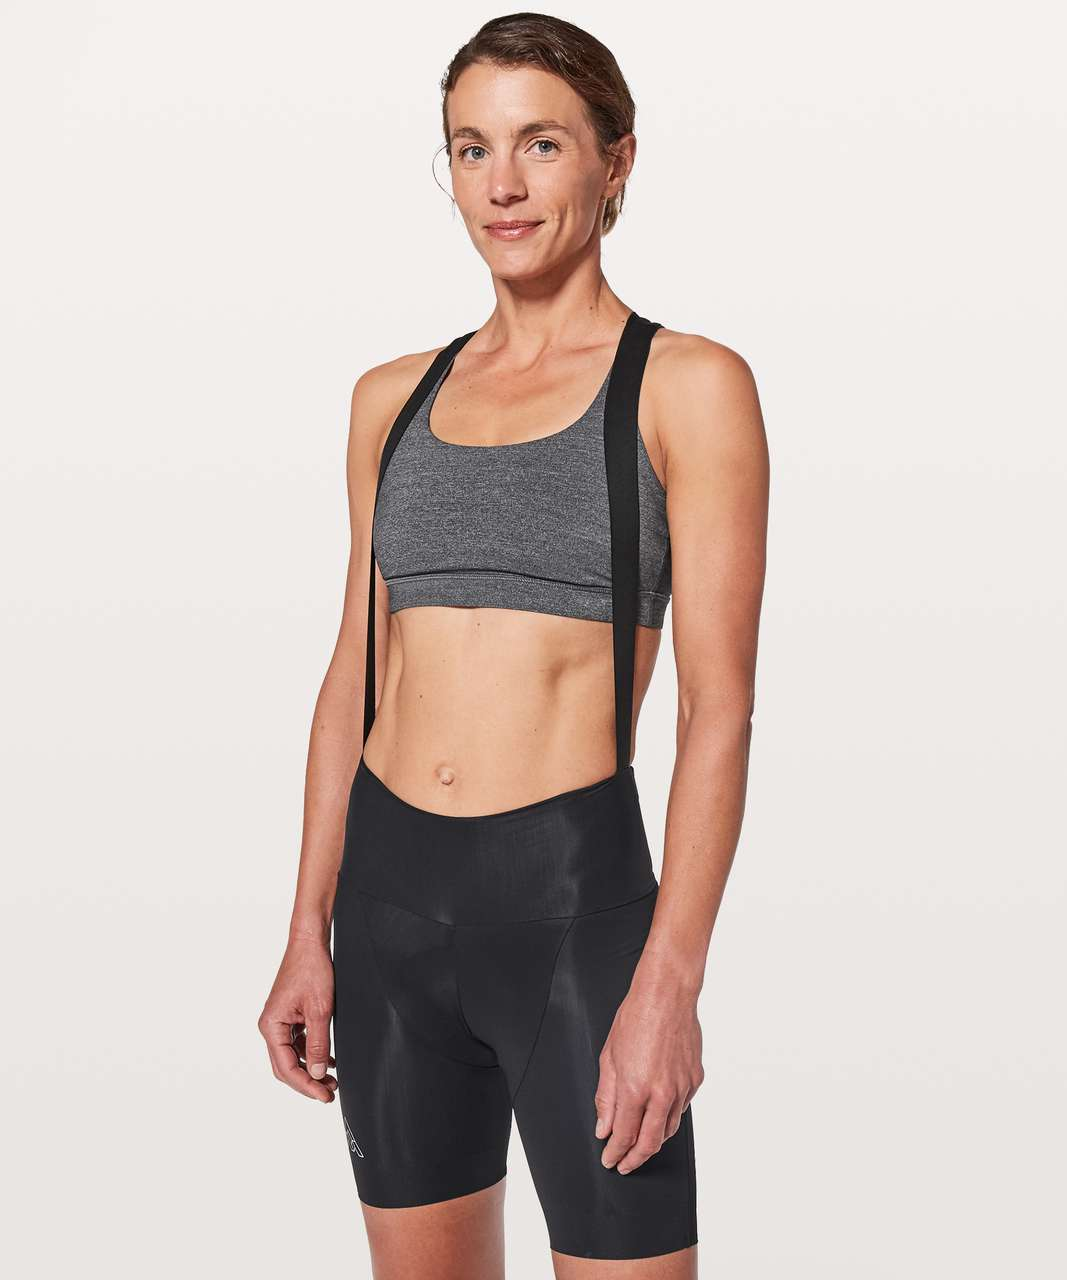 Lululemon 7Mesh Wk2 Bib-Short - Black